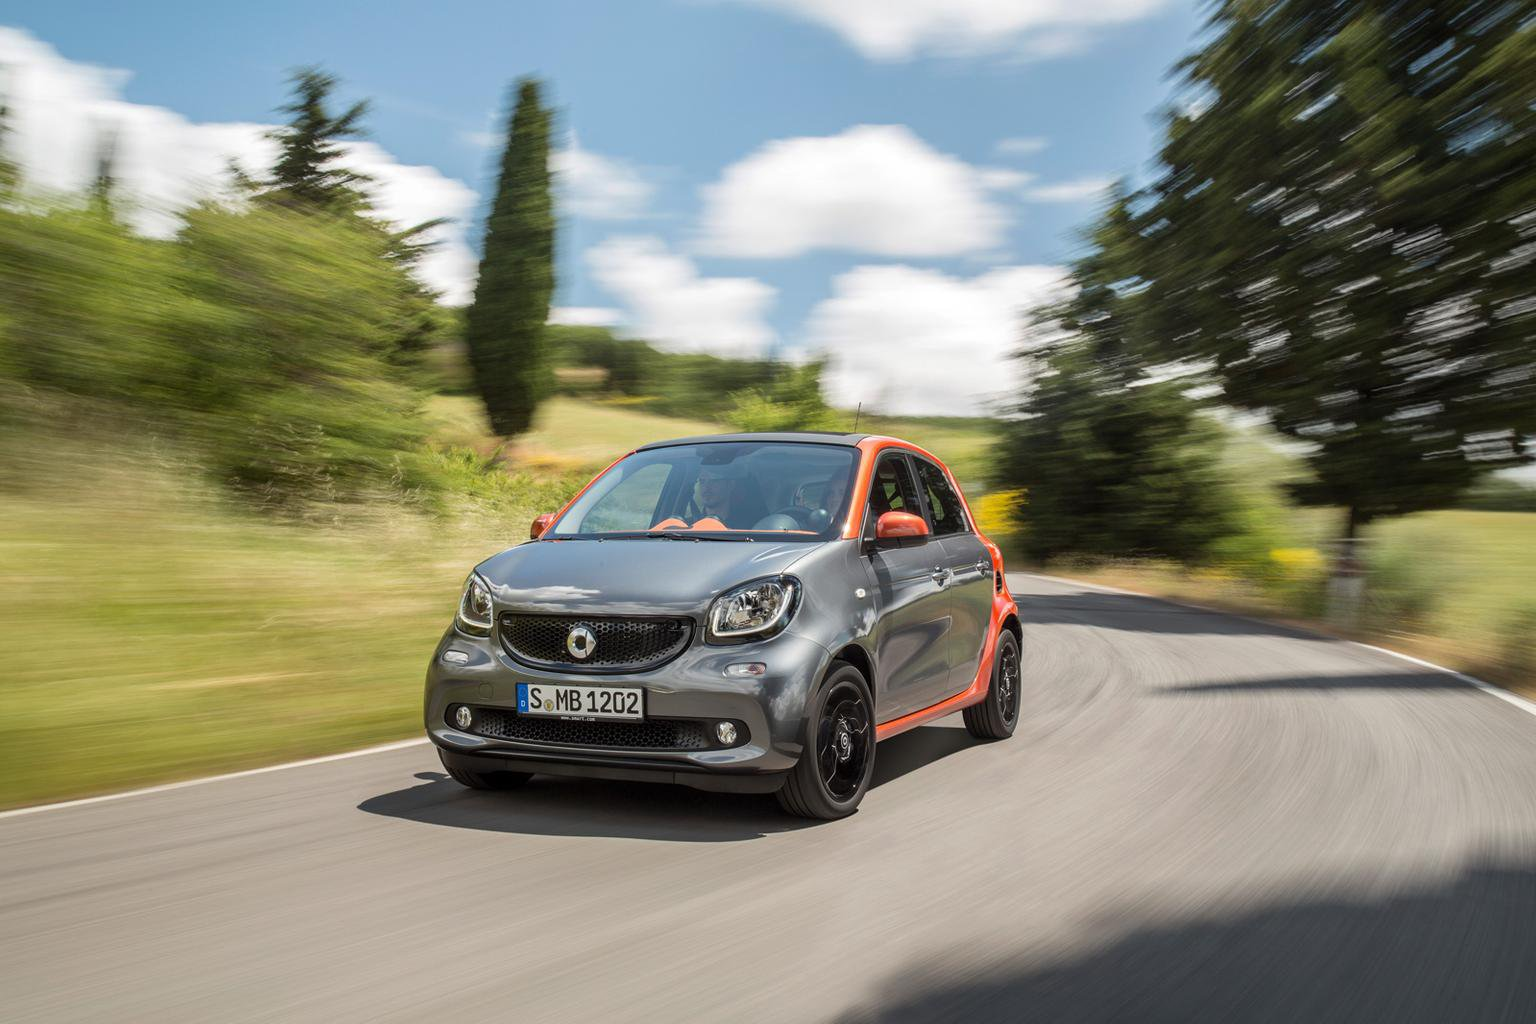 2015 Smart Forfour - specs, prices and on-sale date